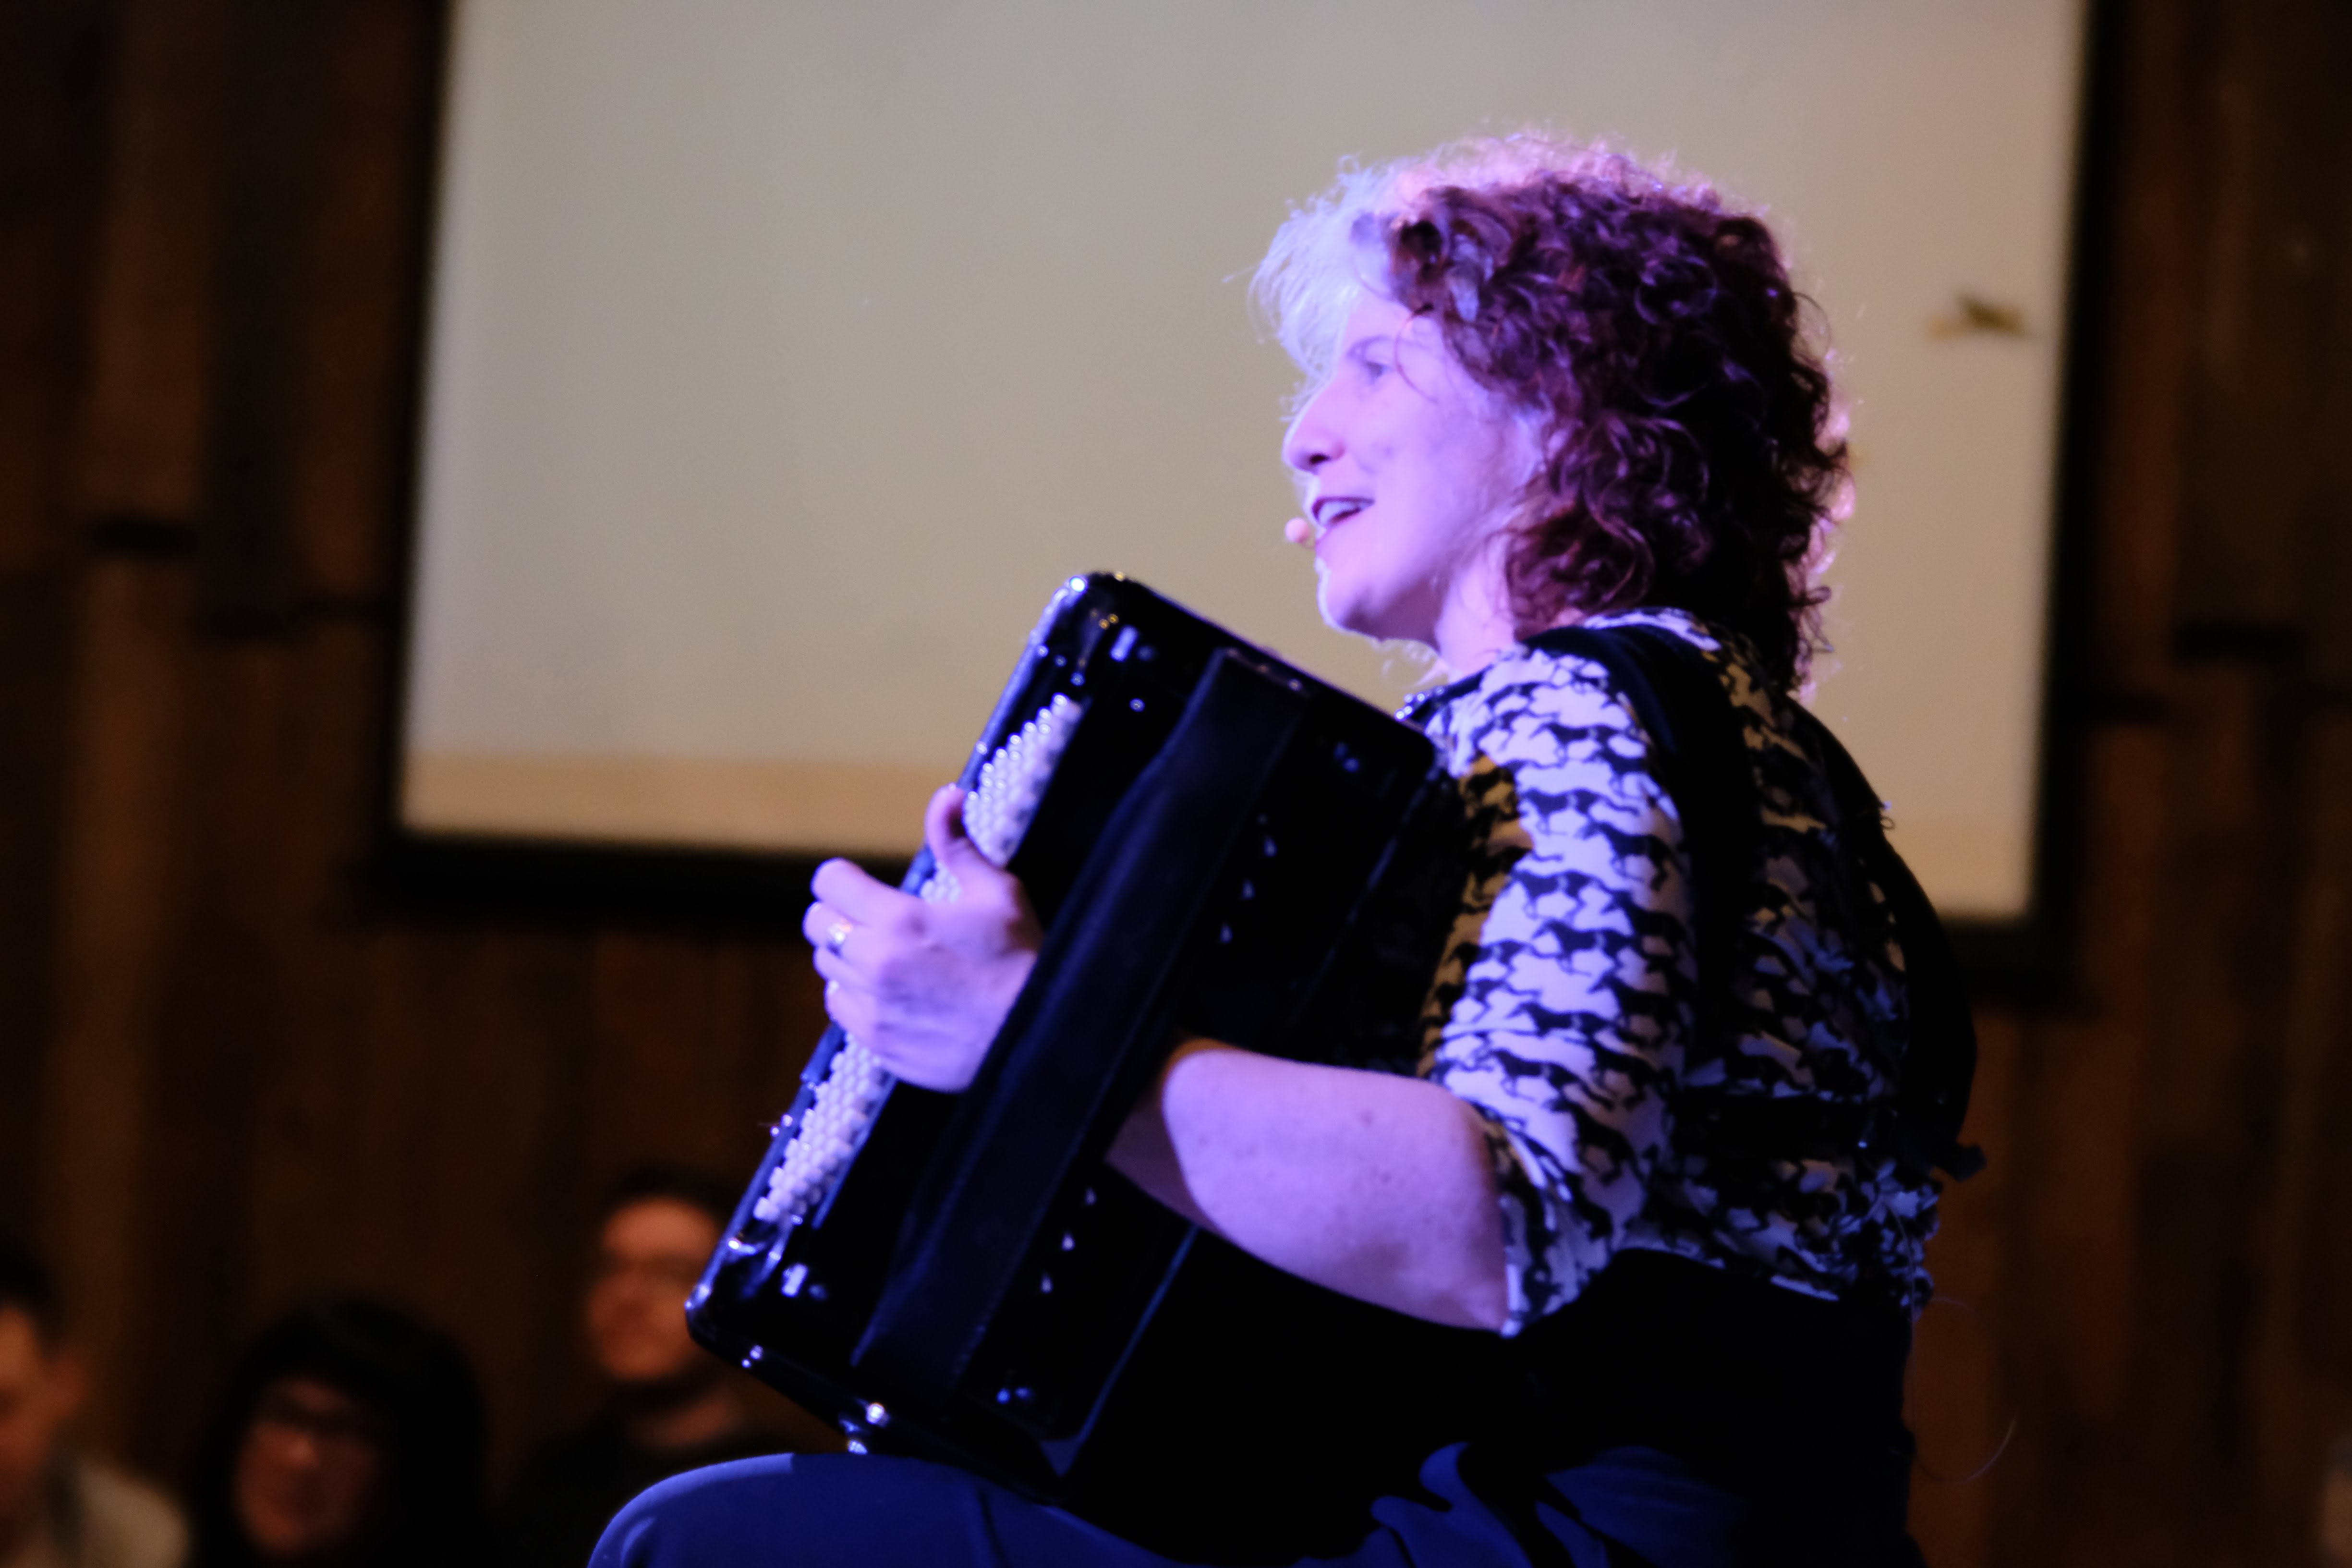 Dr. M. sings and plays Lithium Song on the accordion